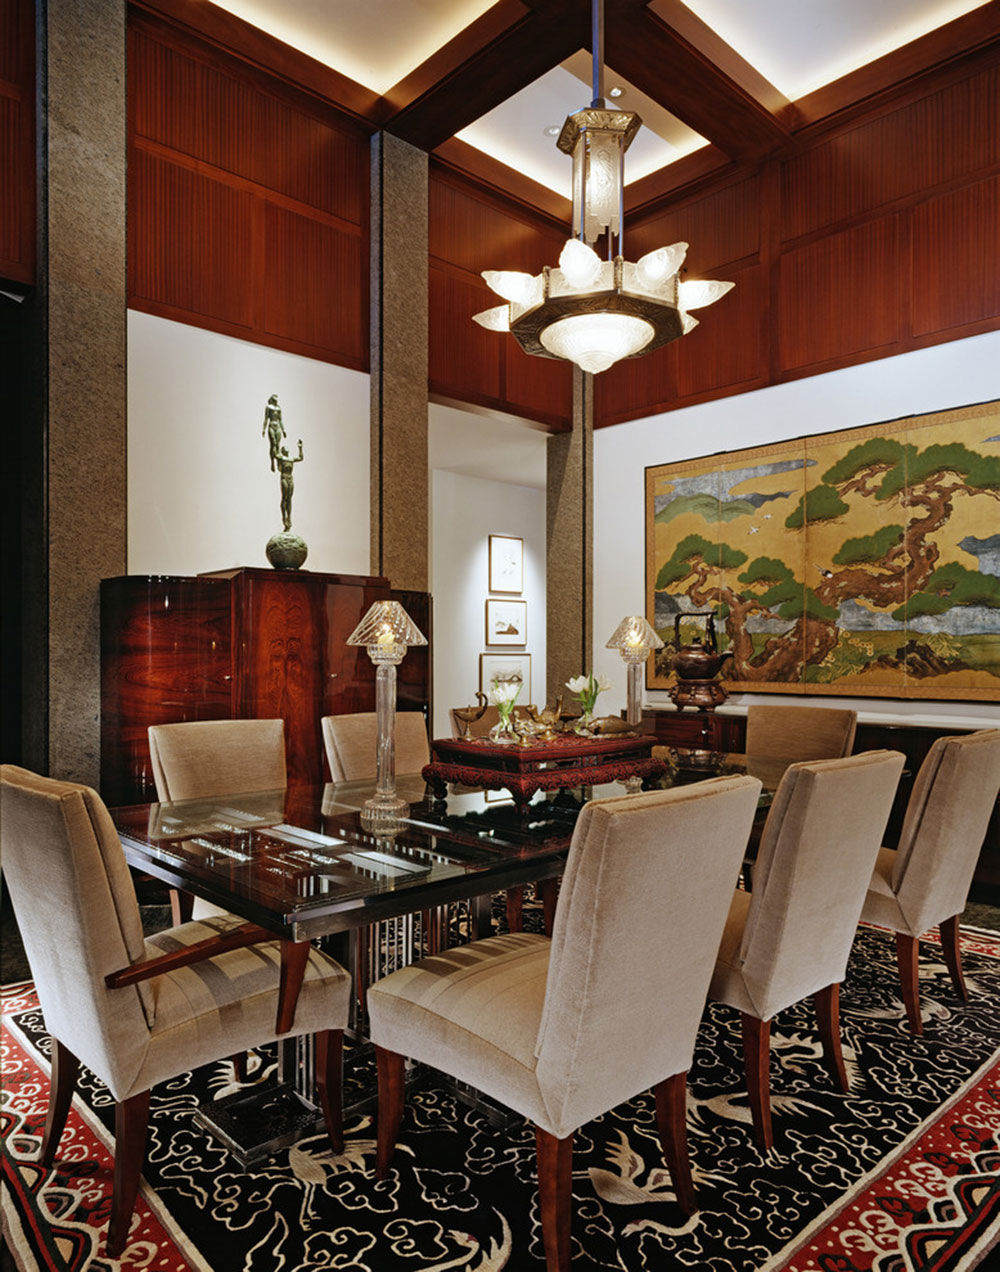 Asian-Inspired-Interior-Design10 Asian-Inspired Interior Design